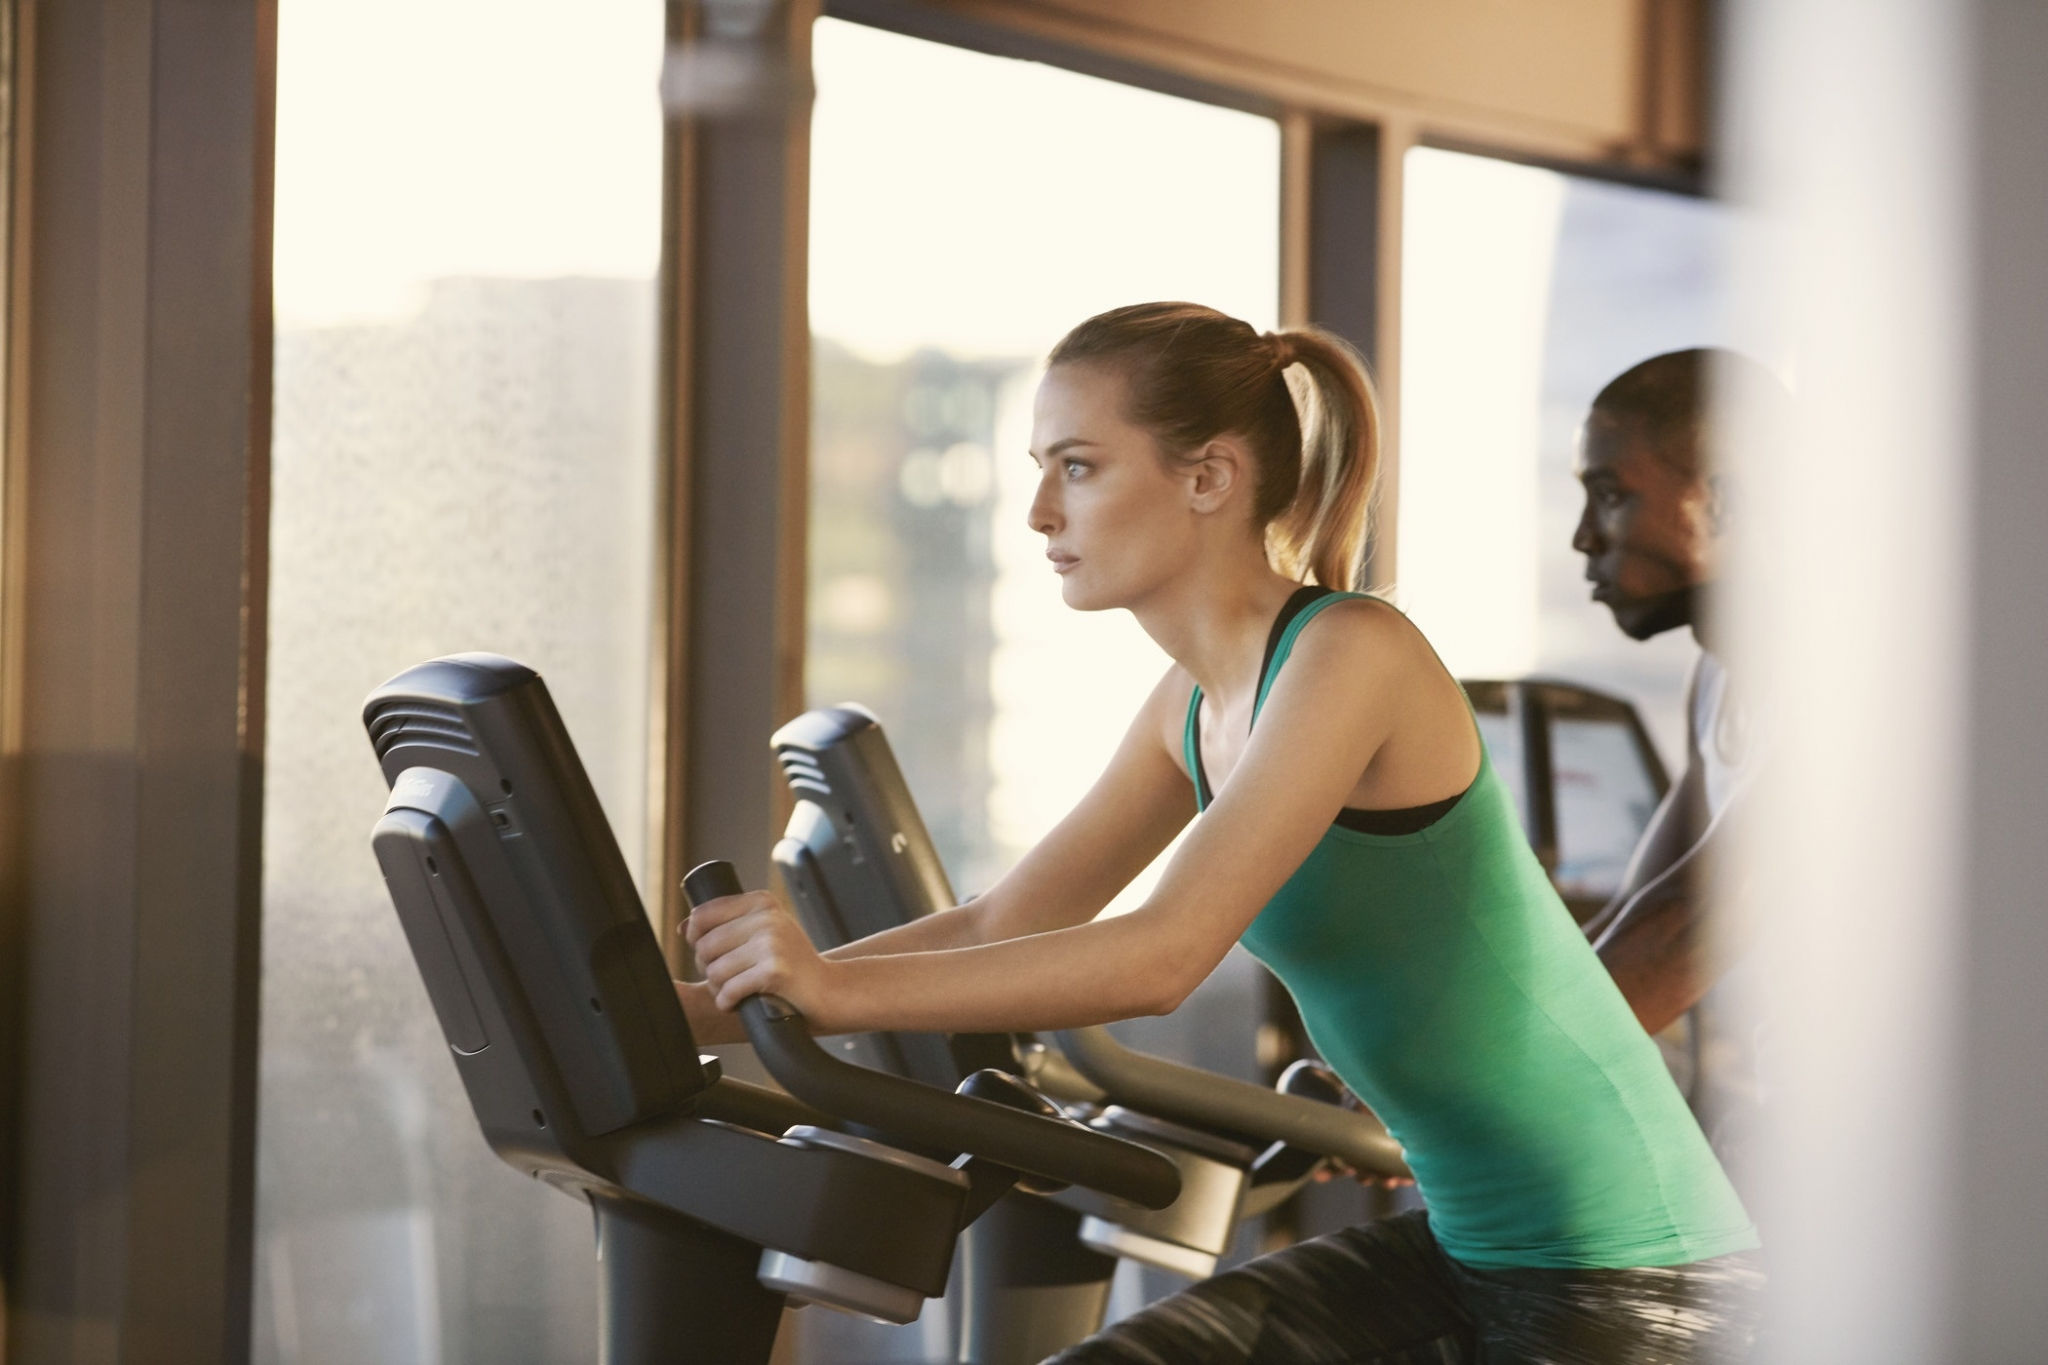 Sheraton Arlington Hotel - Fitness Center